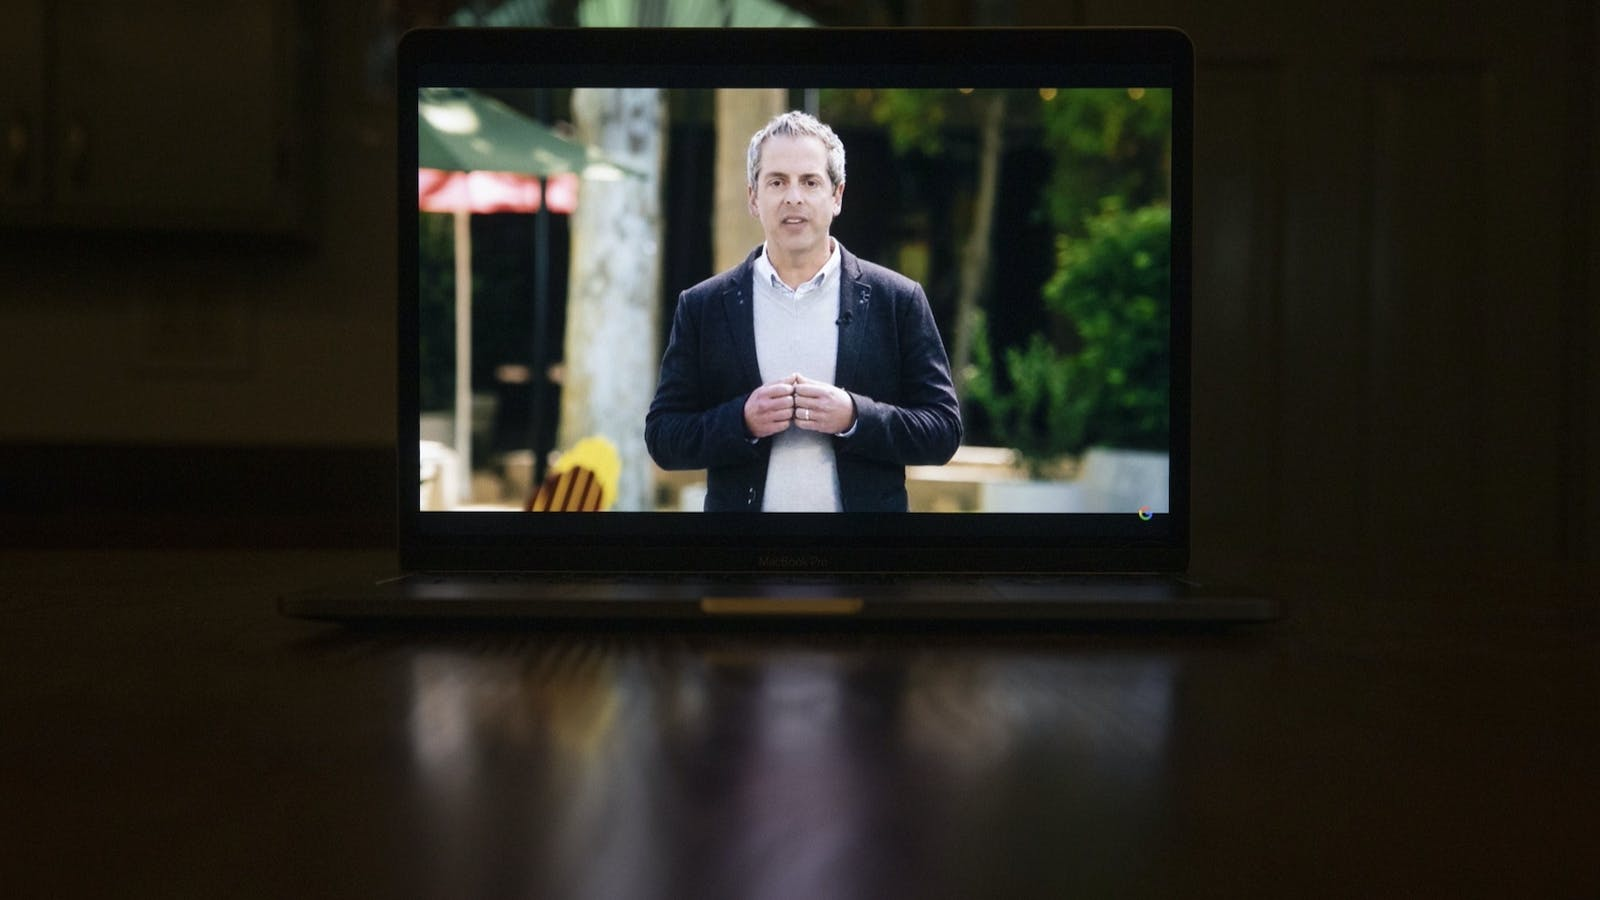 Javier Soltero, general manager of Google Workspace, speaks during an online-only Google developer conference in May. Photo by Bloomberg